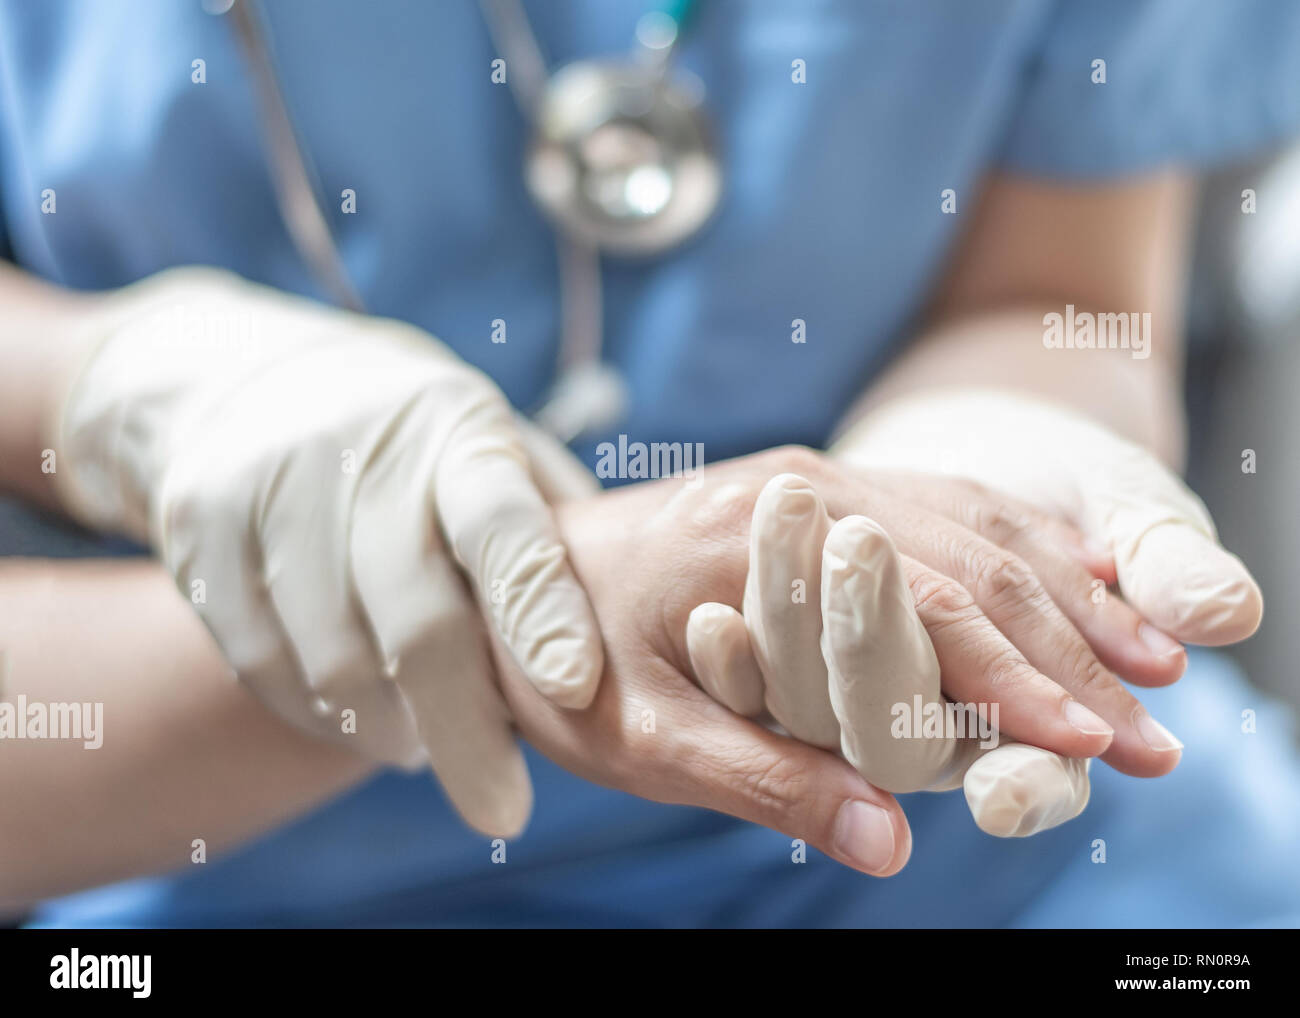 Surgeon, surgical doctor, anesthetist or anesthesiologist holding patient's hand for health care trust and support in professional surgical operation - Stock Image